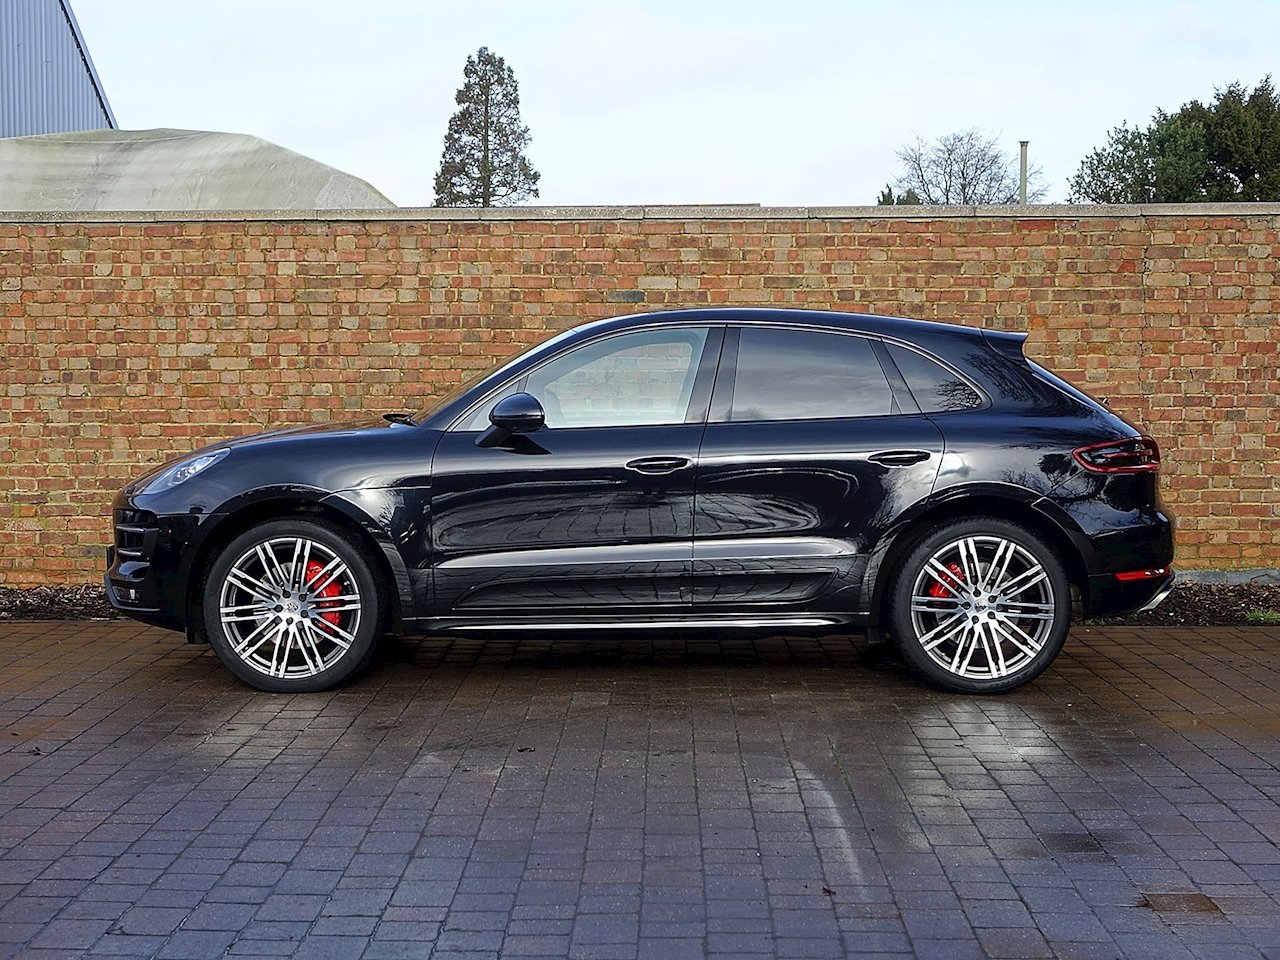 2015 Used Porsche Macan Turbo Jet Black